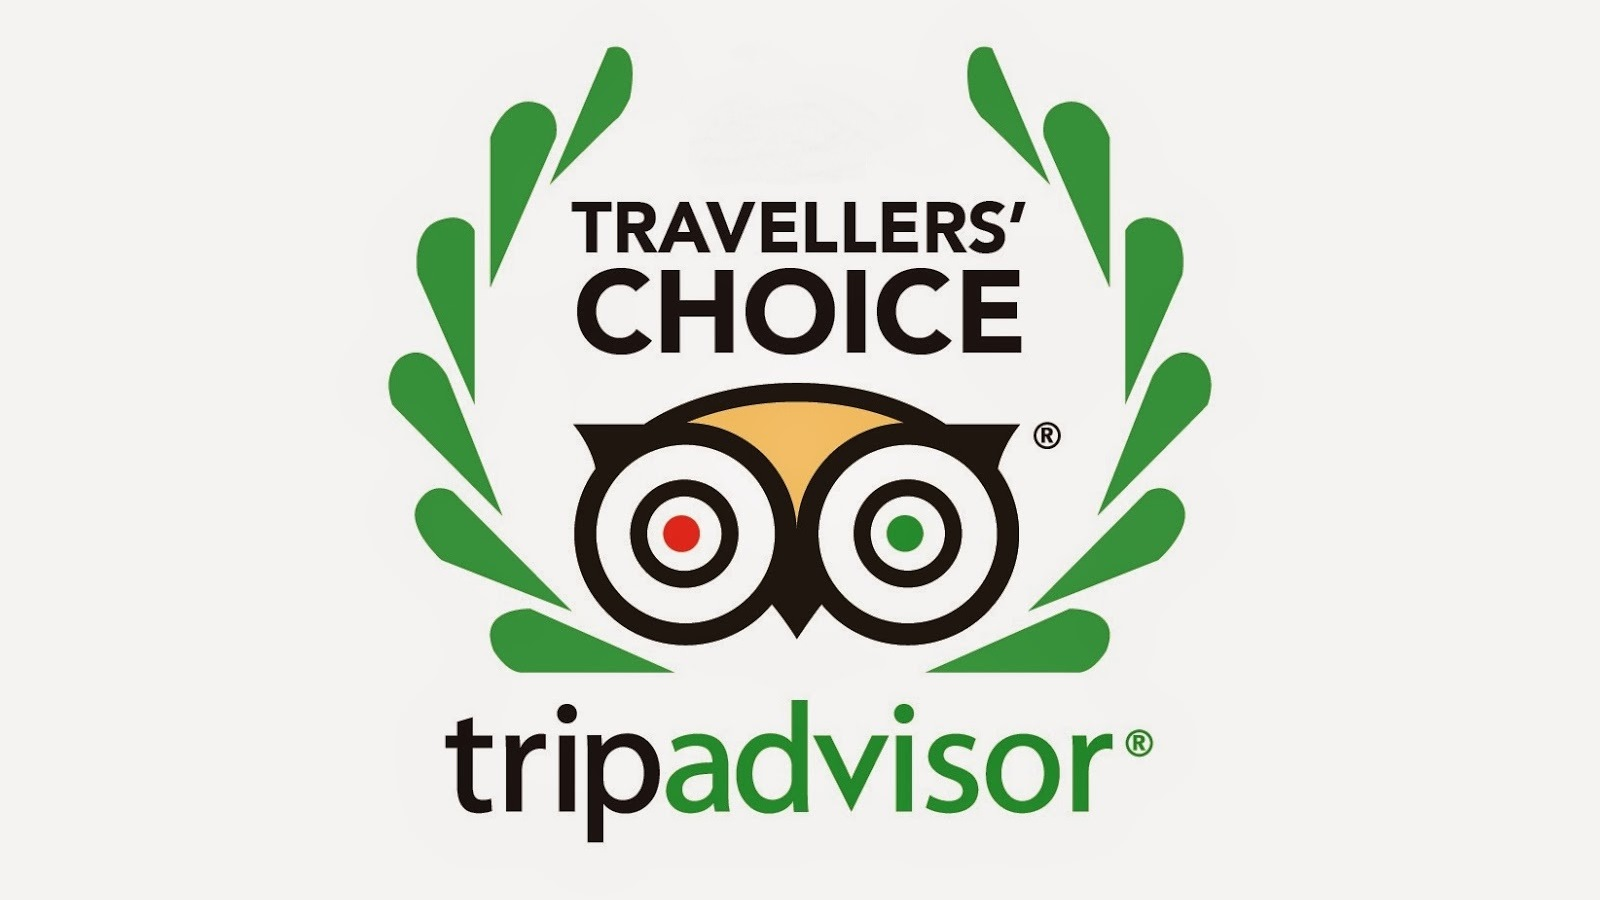 9 Heritage Malta Attractions Receive The 2020 TripAdvisor Travellers' Choice Award